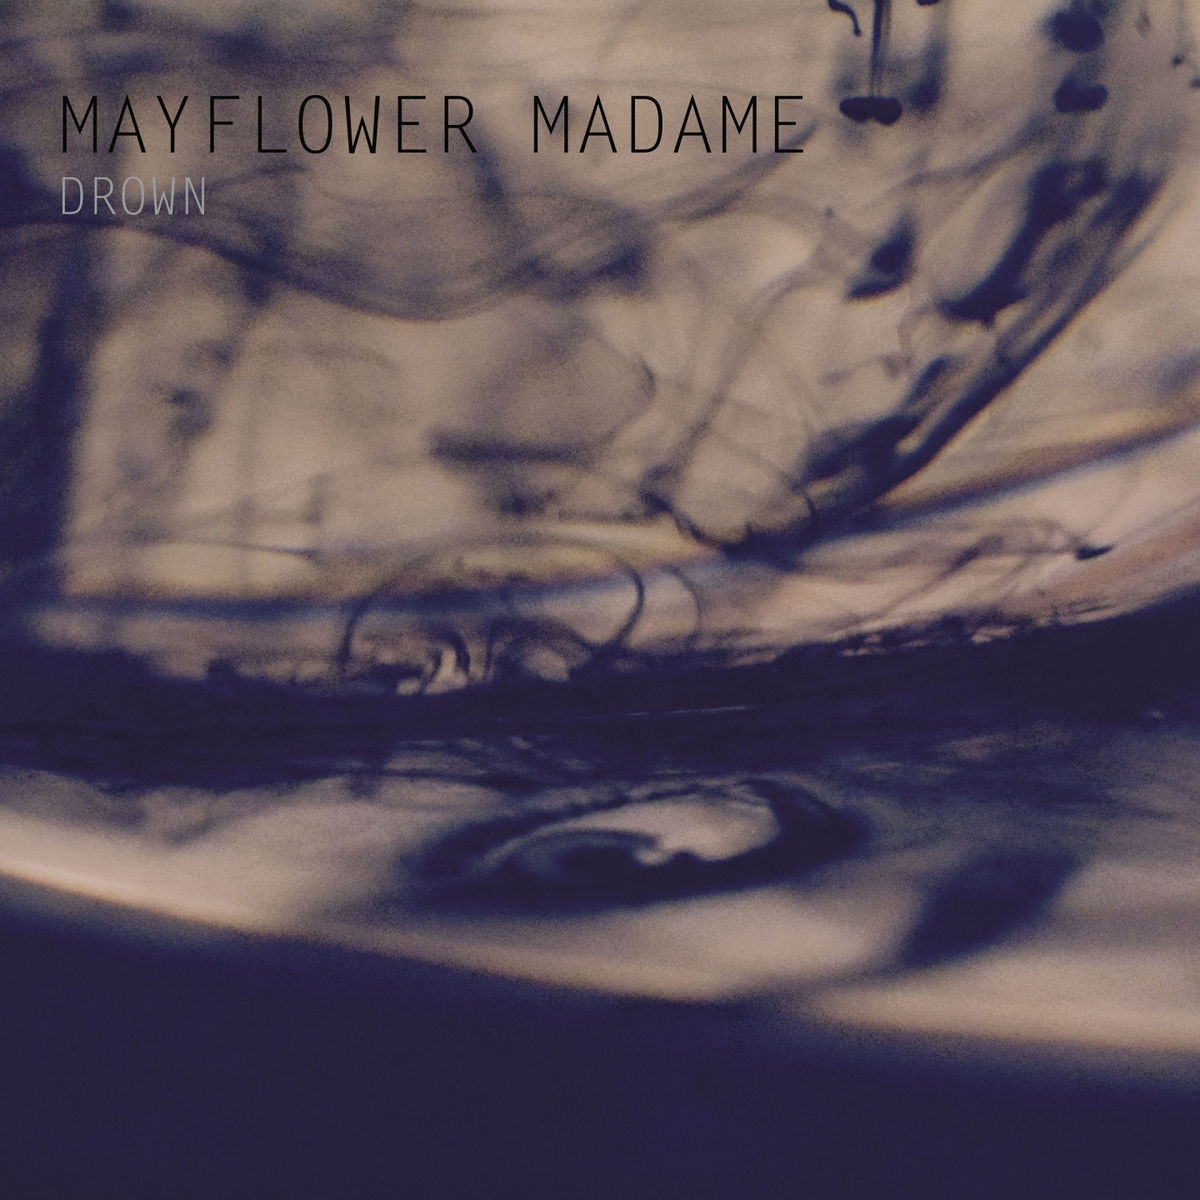 Mayflower Madame, Drown